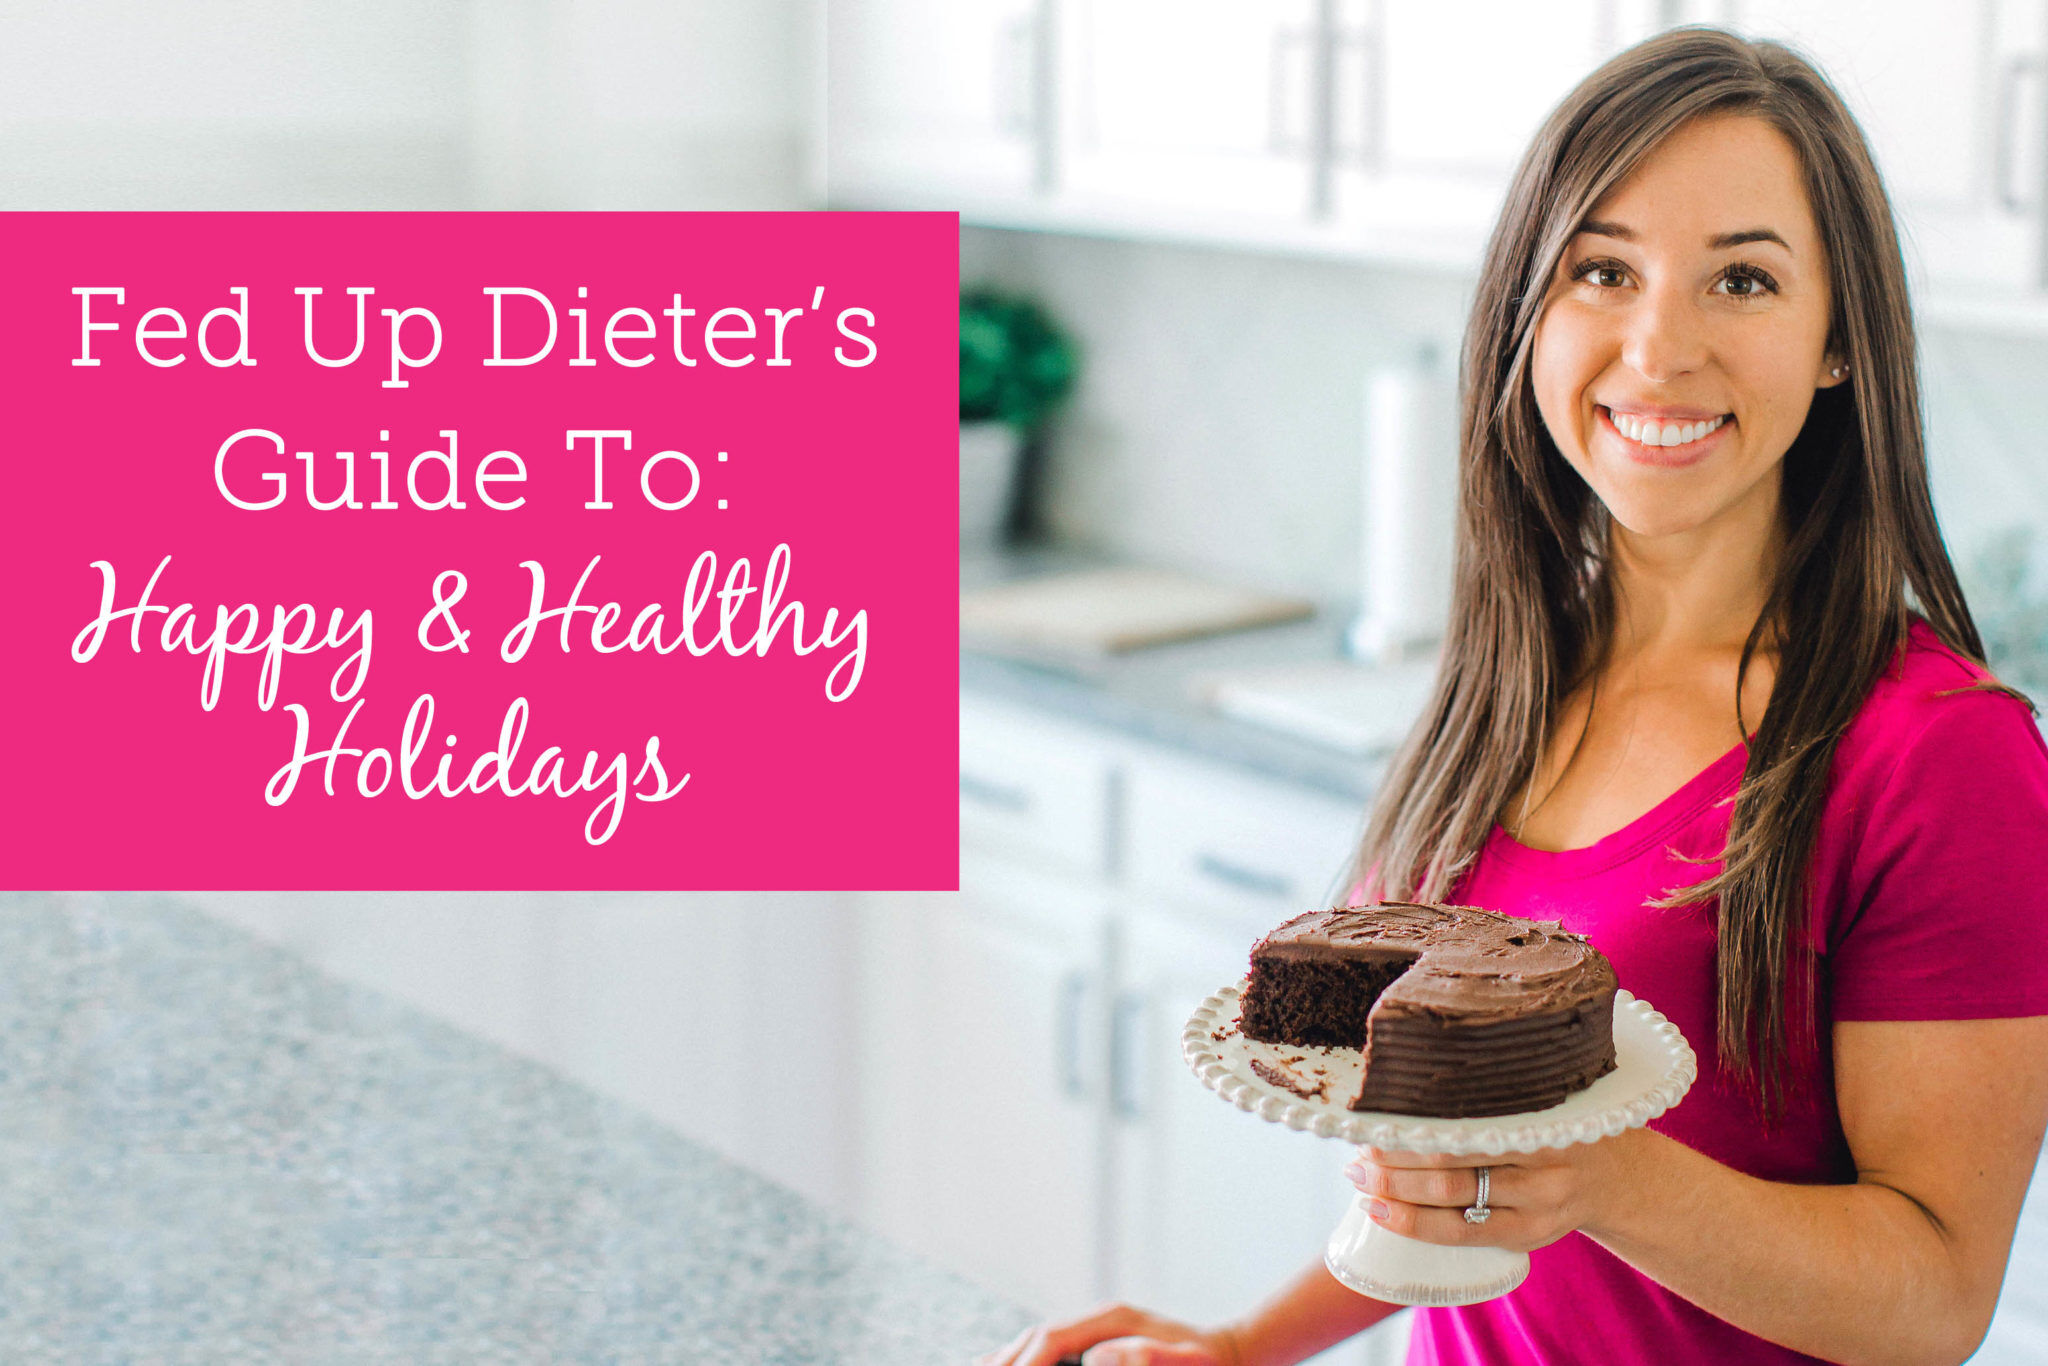 Fed Up Dieter's Guide to Happy & Healthy Holidays